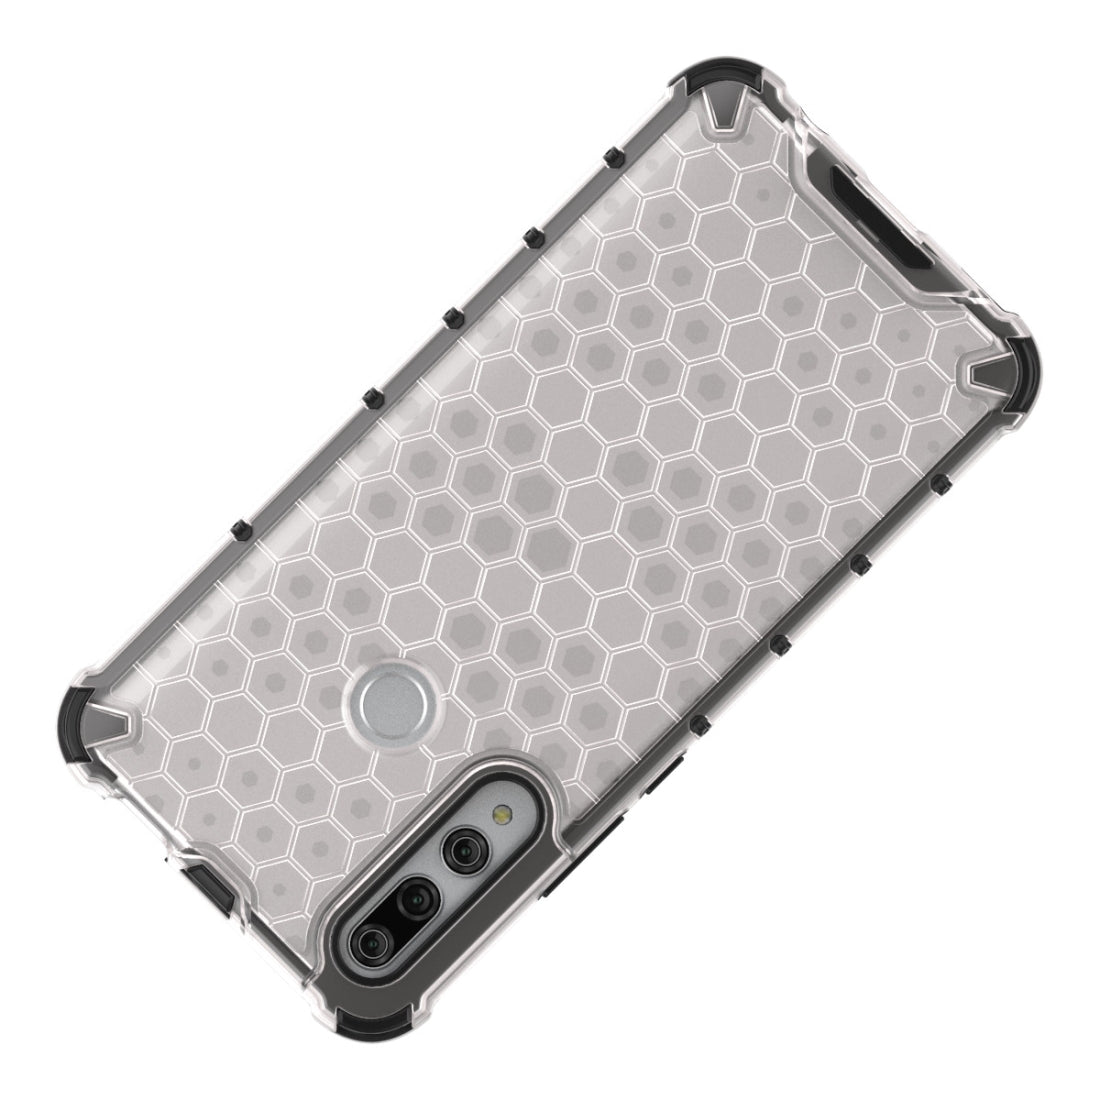 For Huawei Y9 Prime (2019)  Shockproof Honeycomb PC + TPU Case(White)